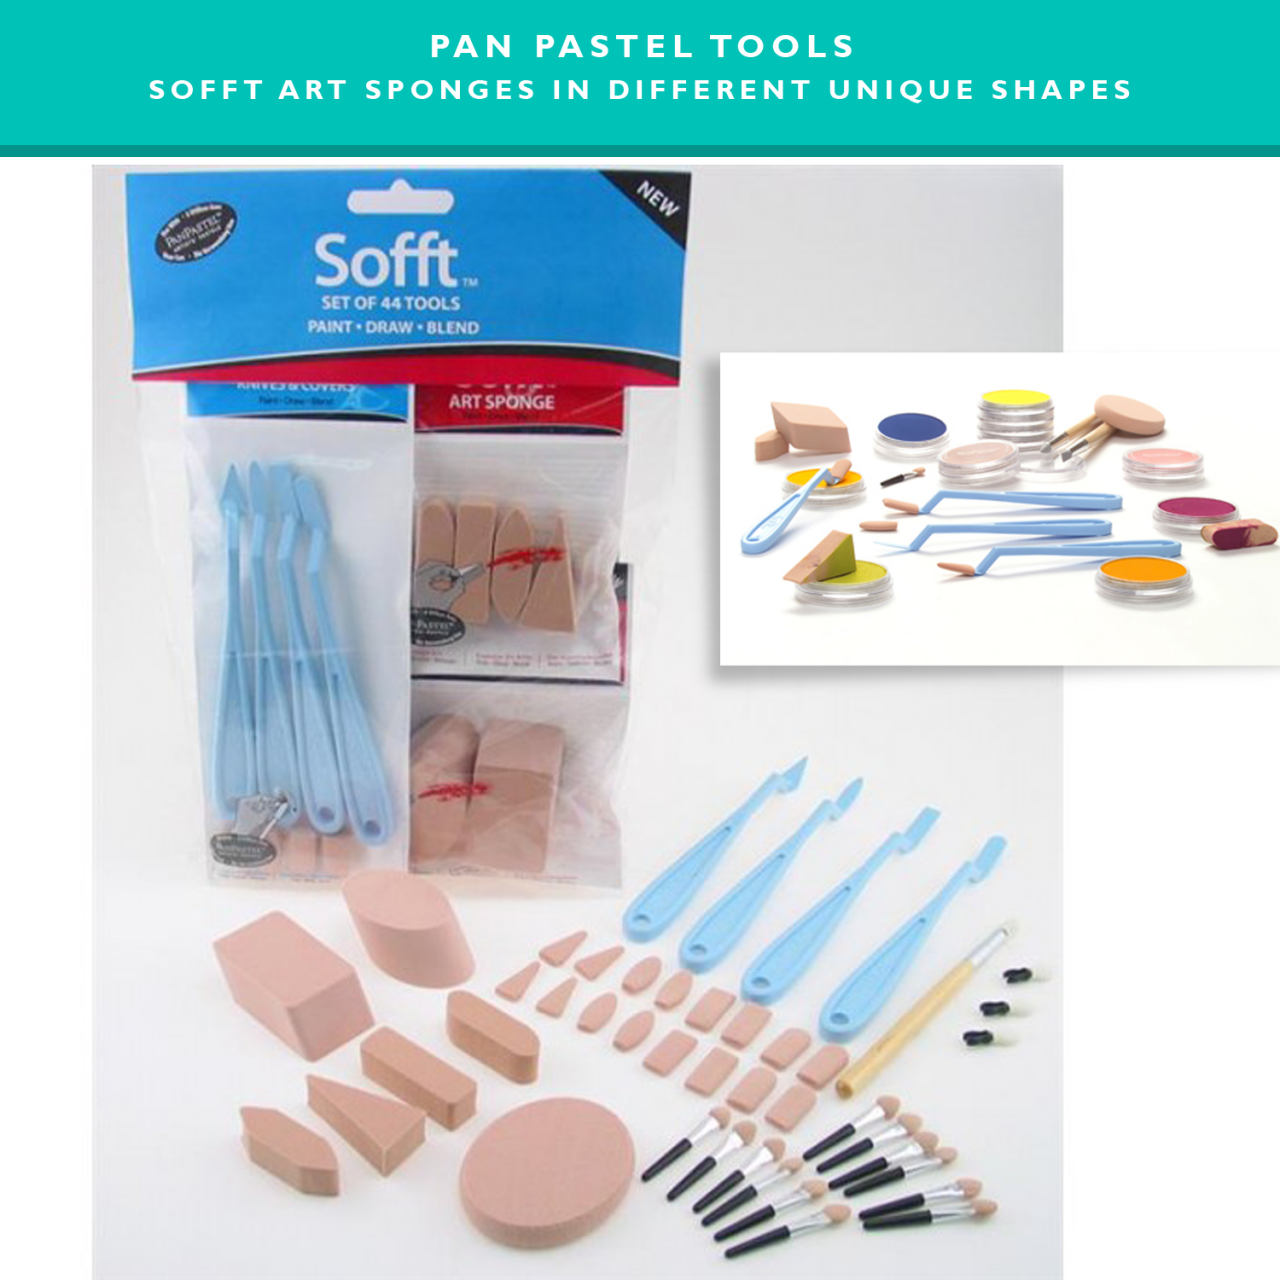 Panpastel tools - Sofft art sponges for panting, drawing and blending - Pan pastel